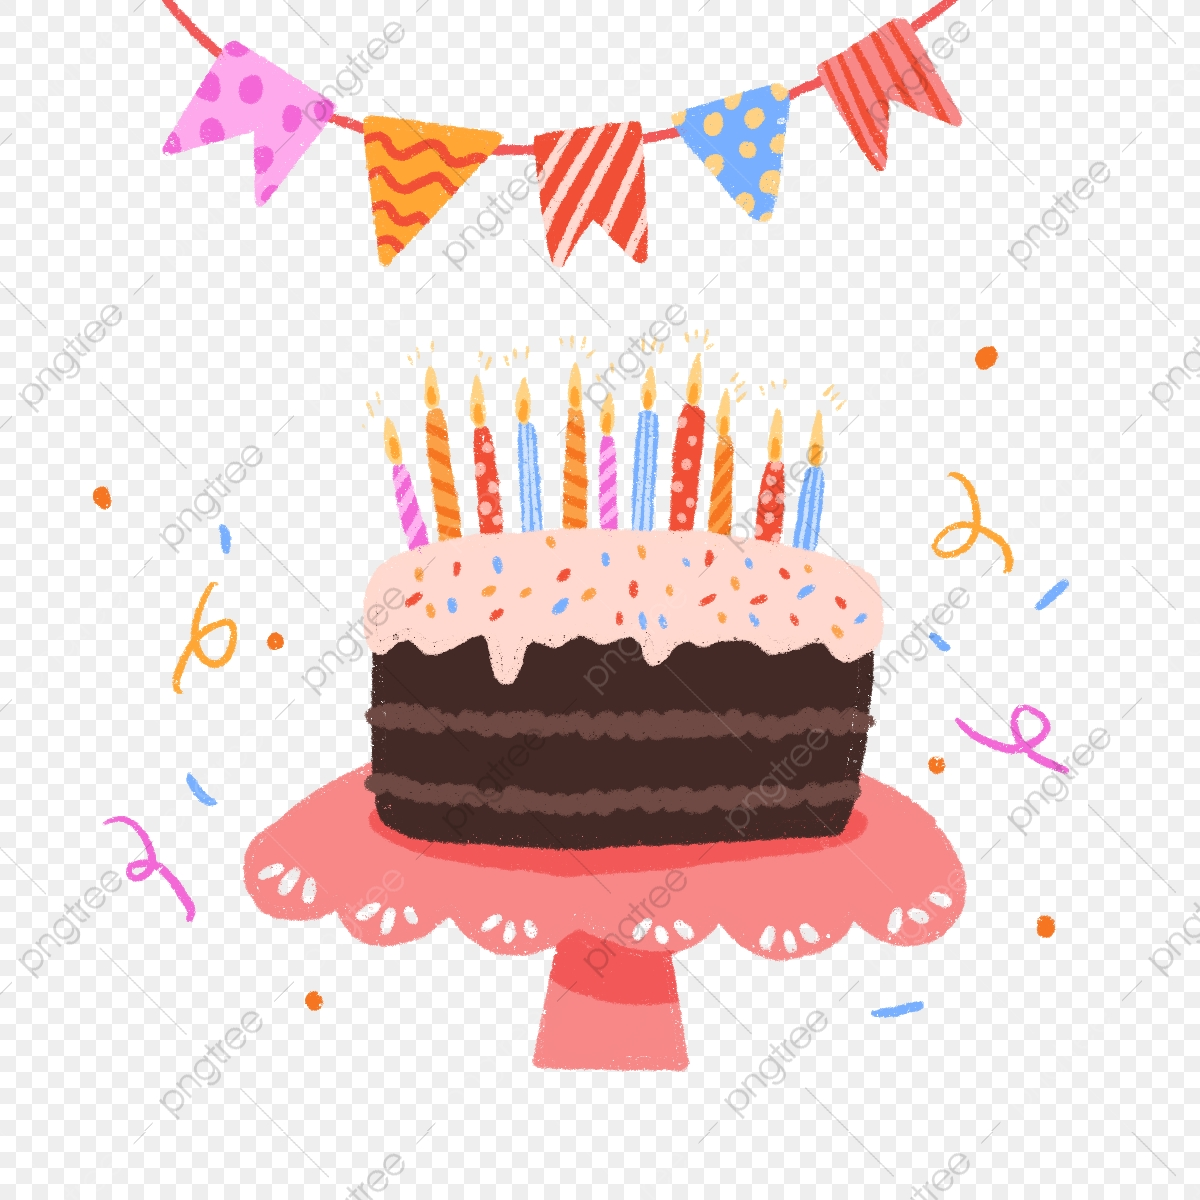 Hand Draw Cute Birthday Cake Cake Hand Drawn Cute Png Transparent Clipart Image And Psd File For Free Download